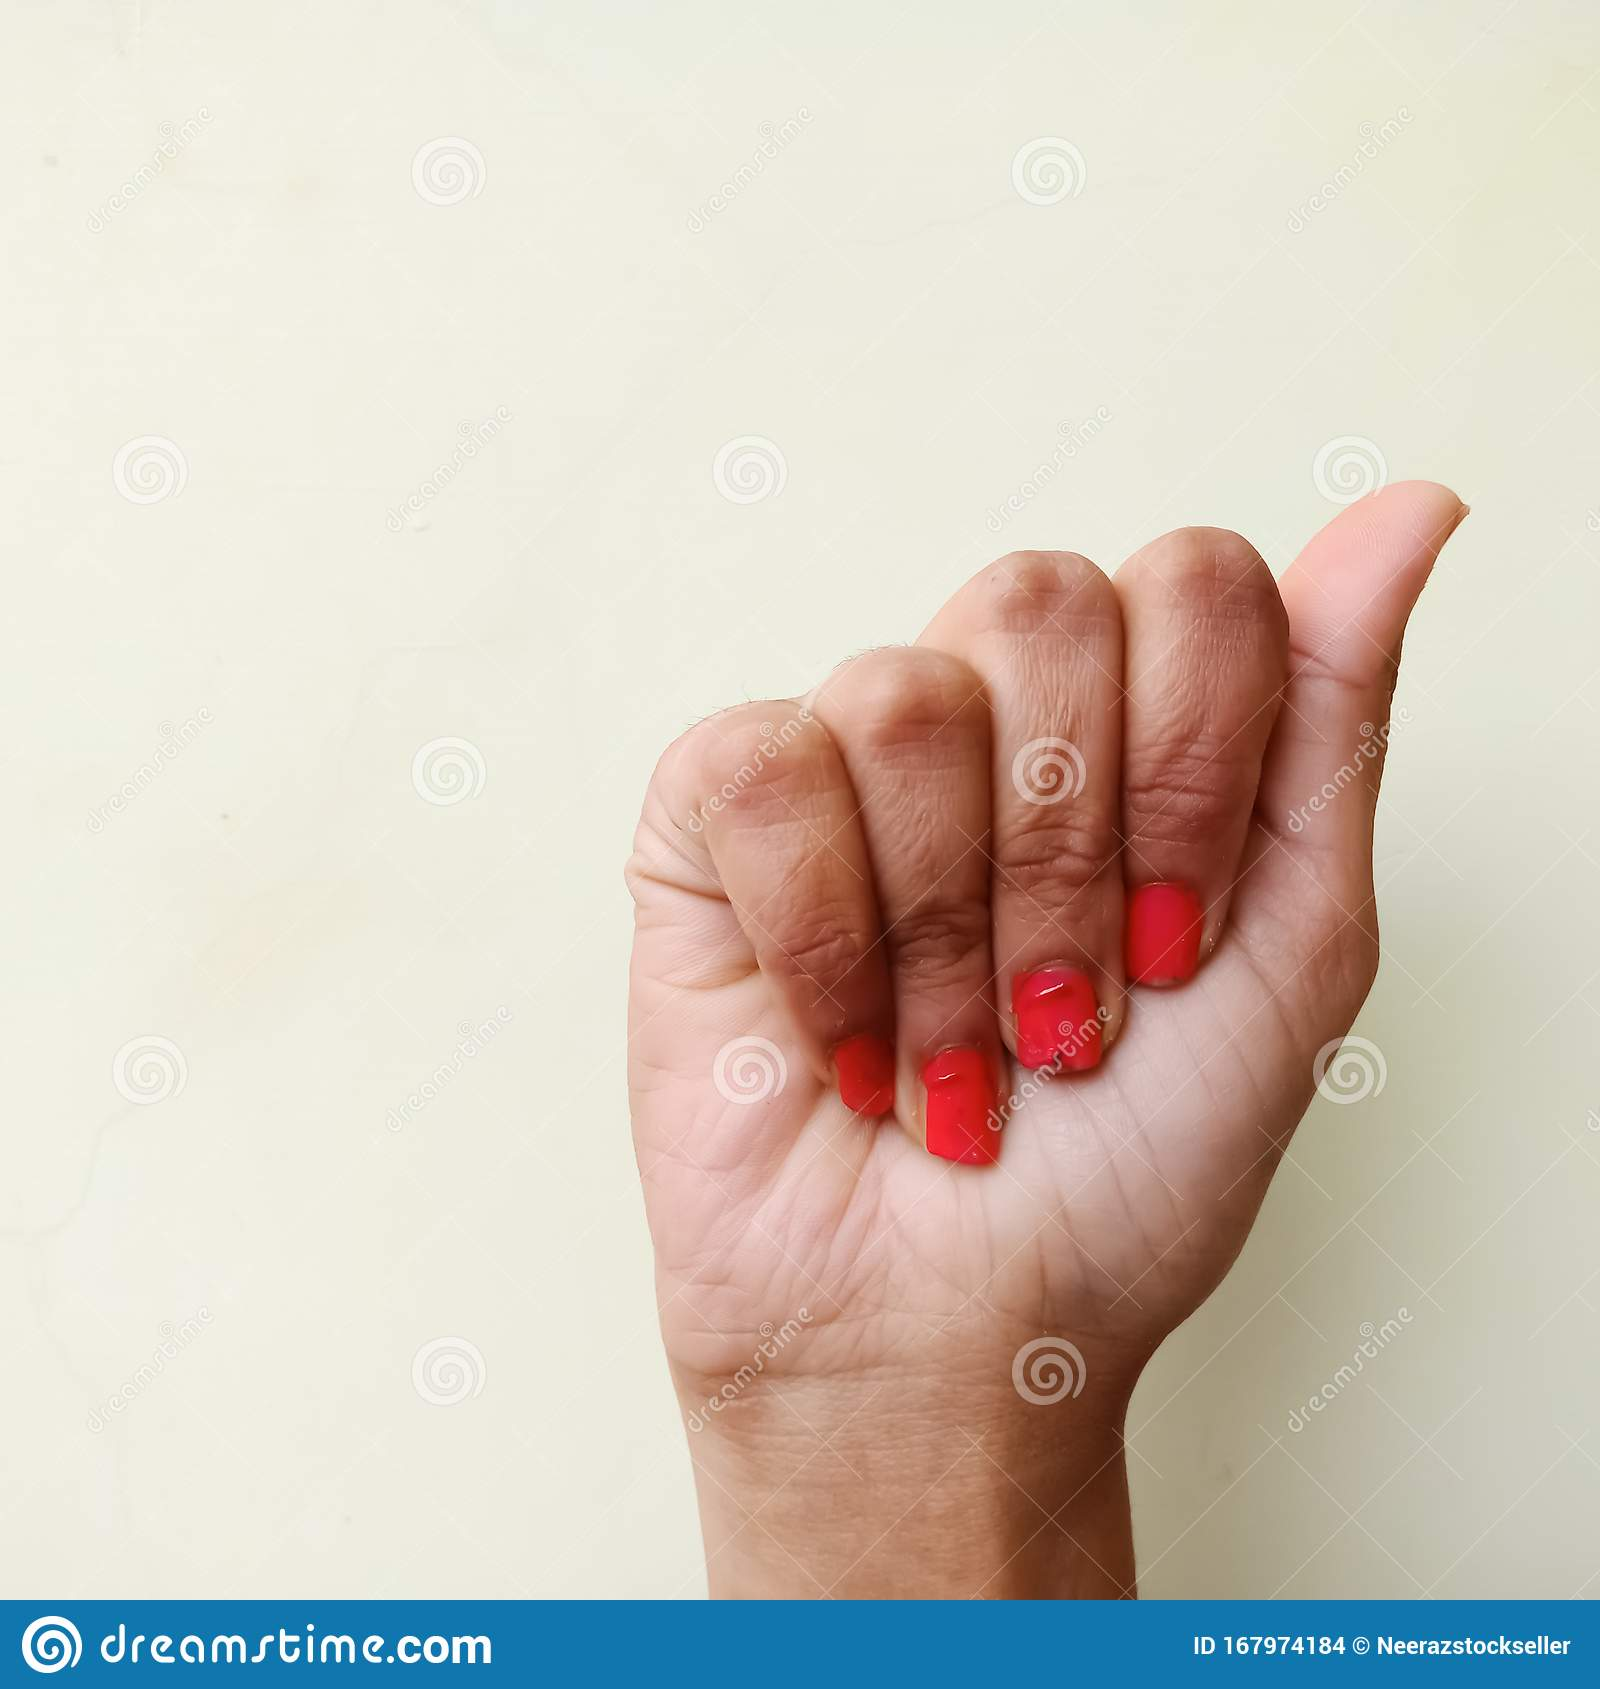 American Sign Language Alphabet Letter A Displayed With